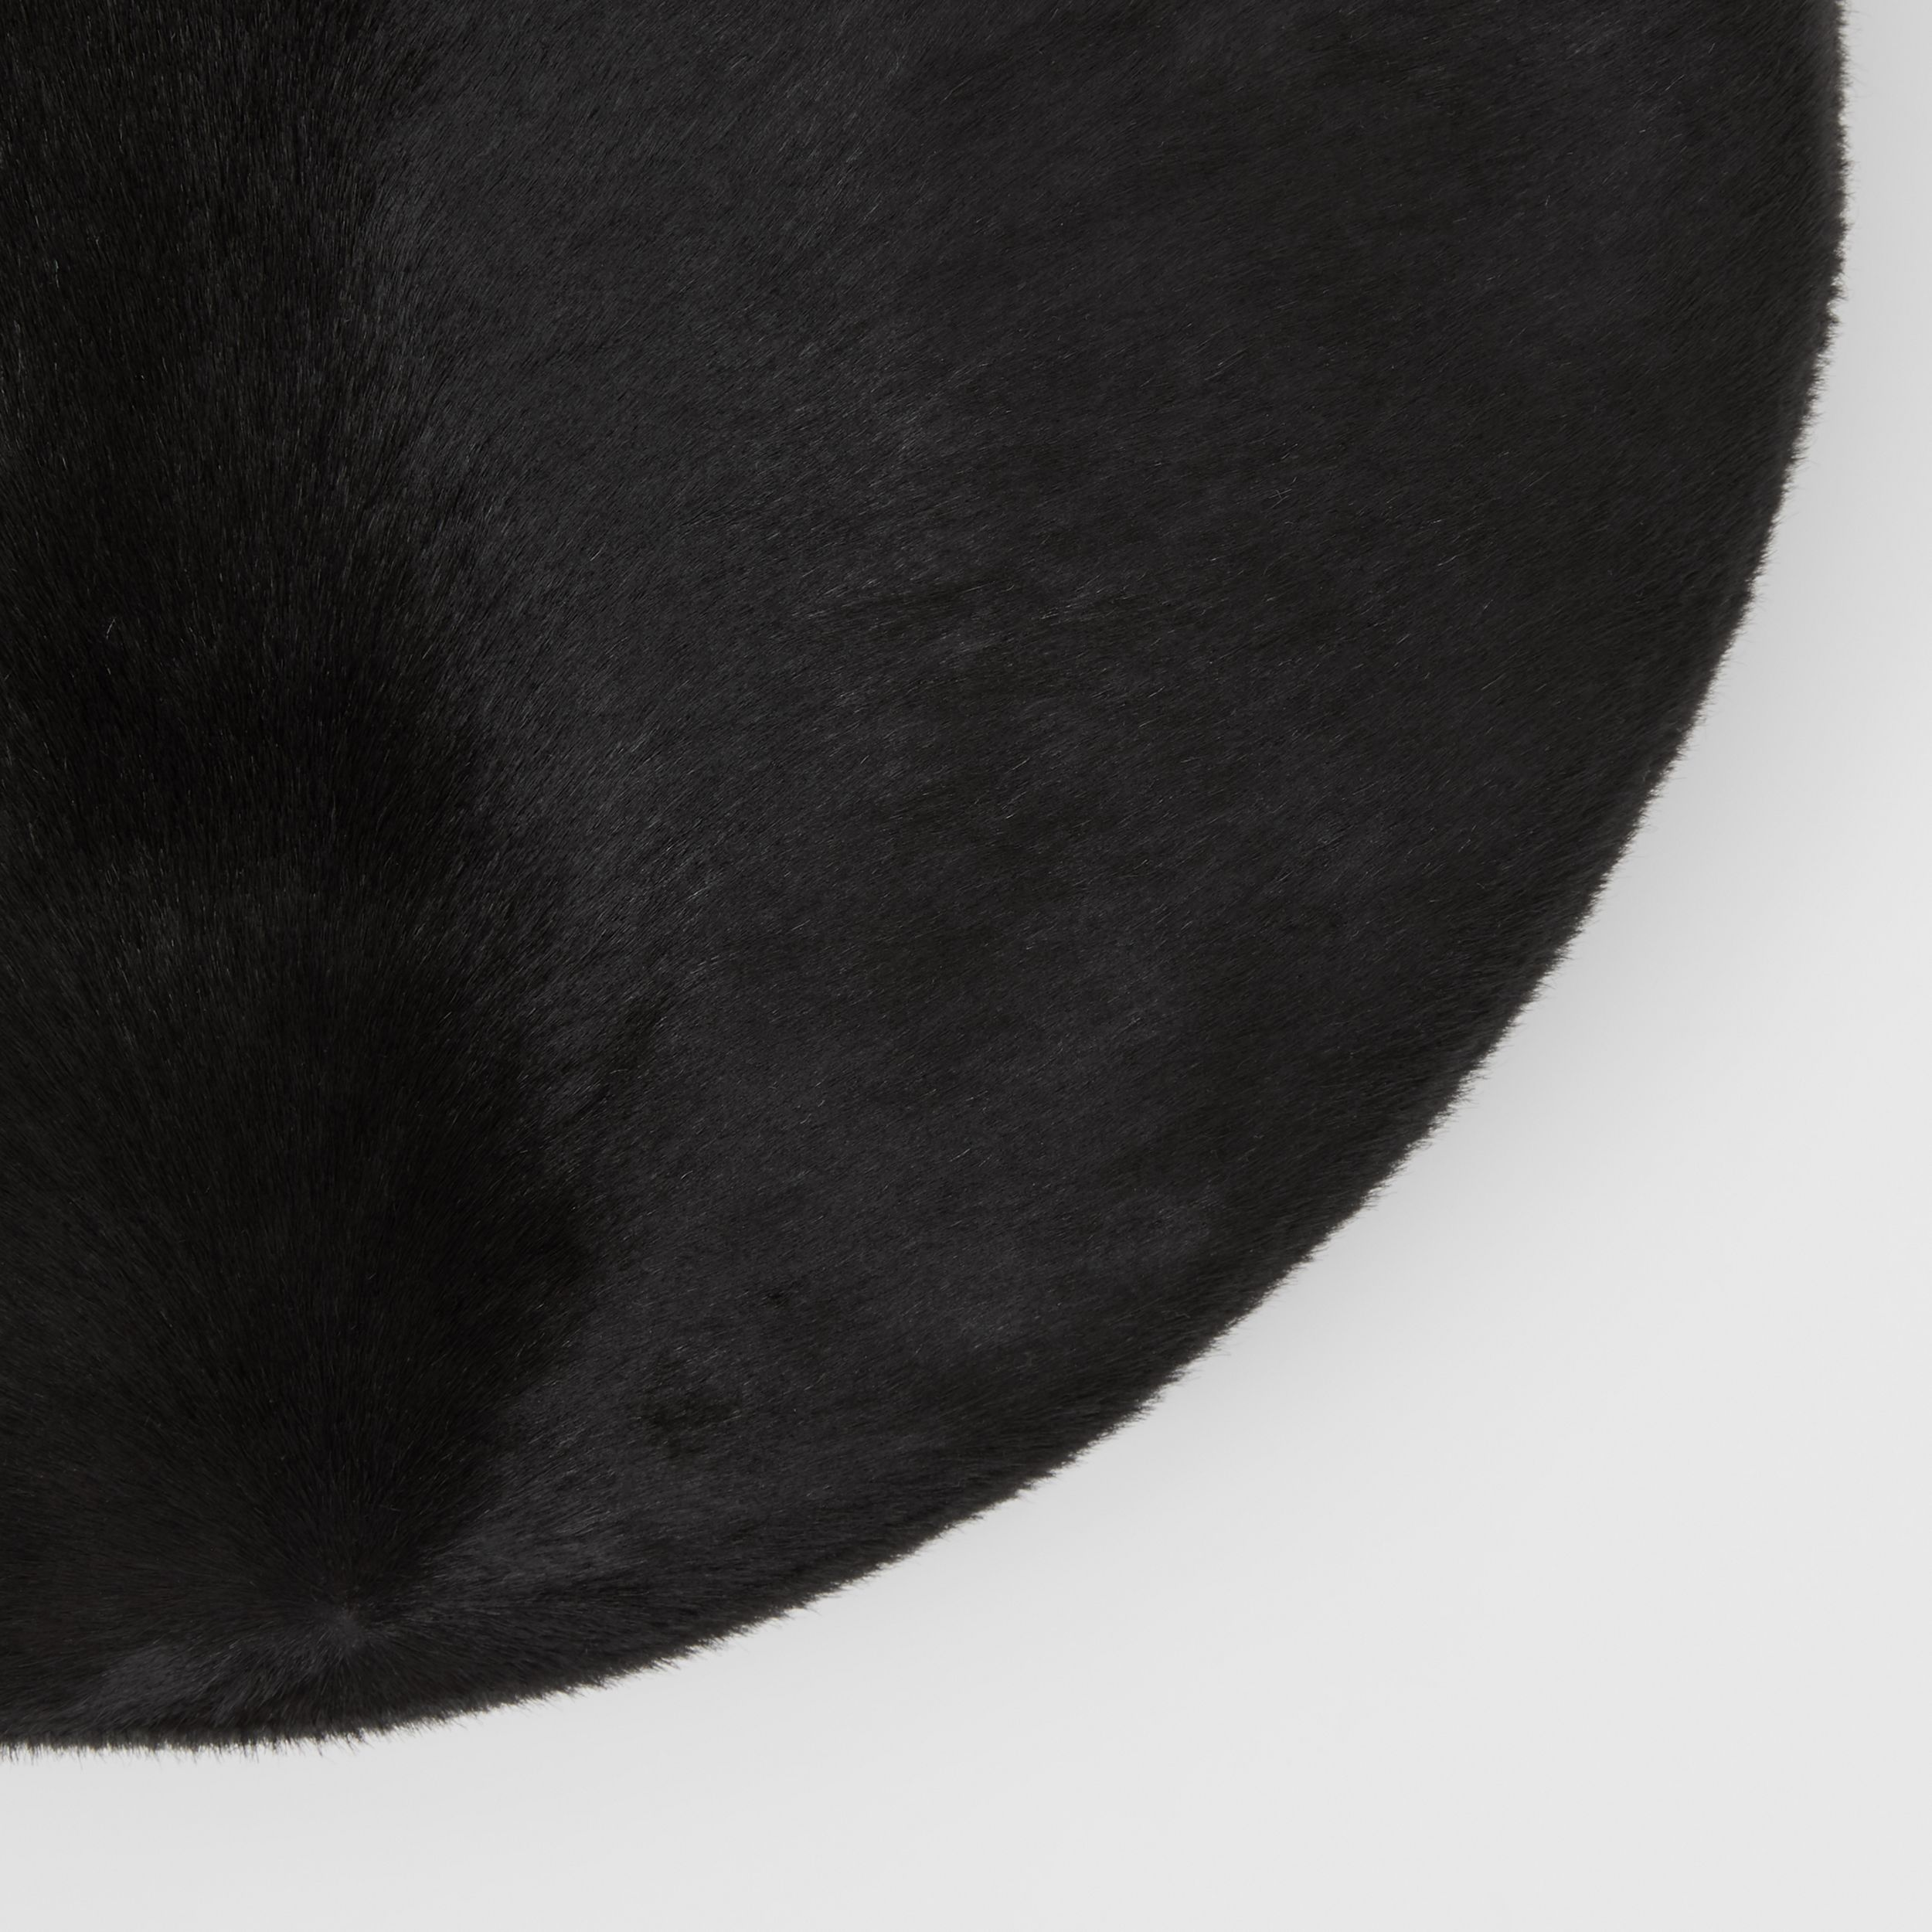 Calf Hair Oversized Beret in Black | Burberry Canada - 2